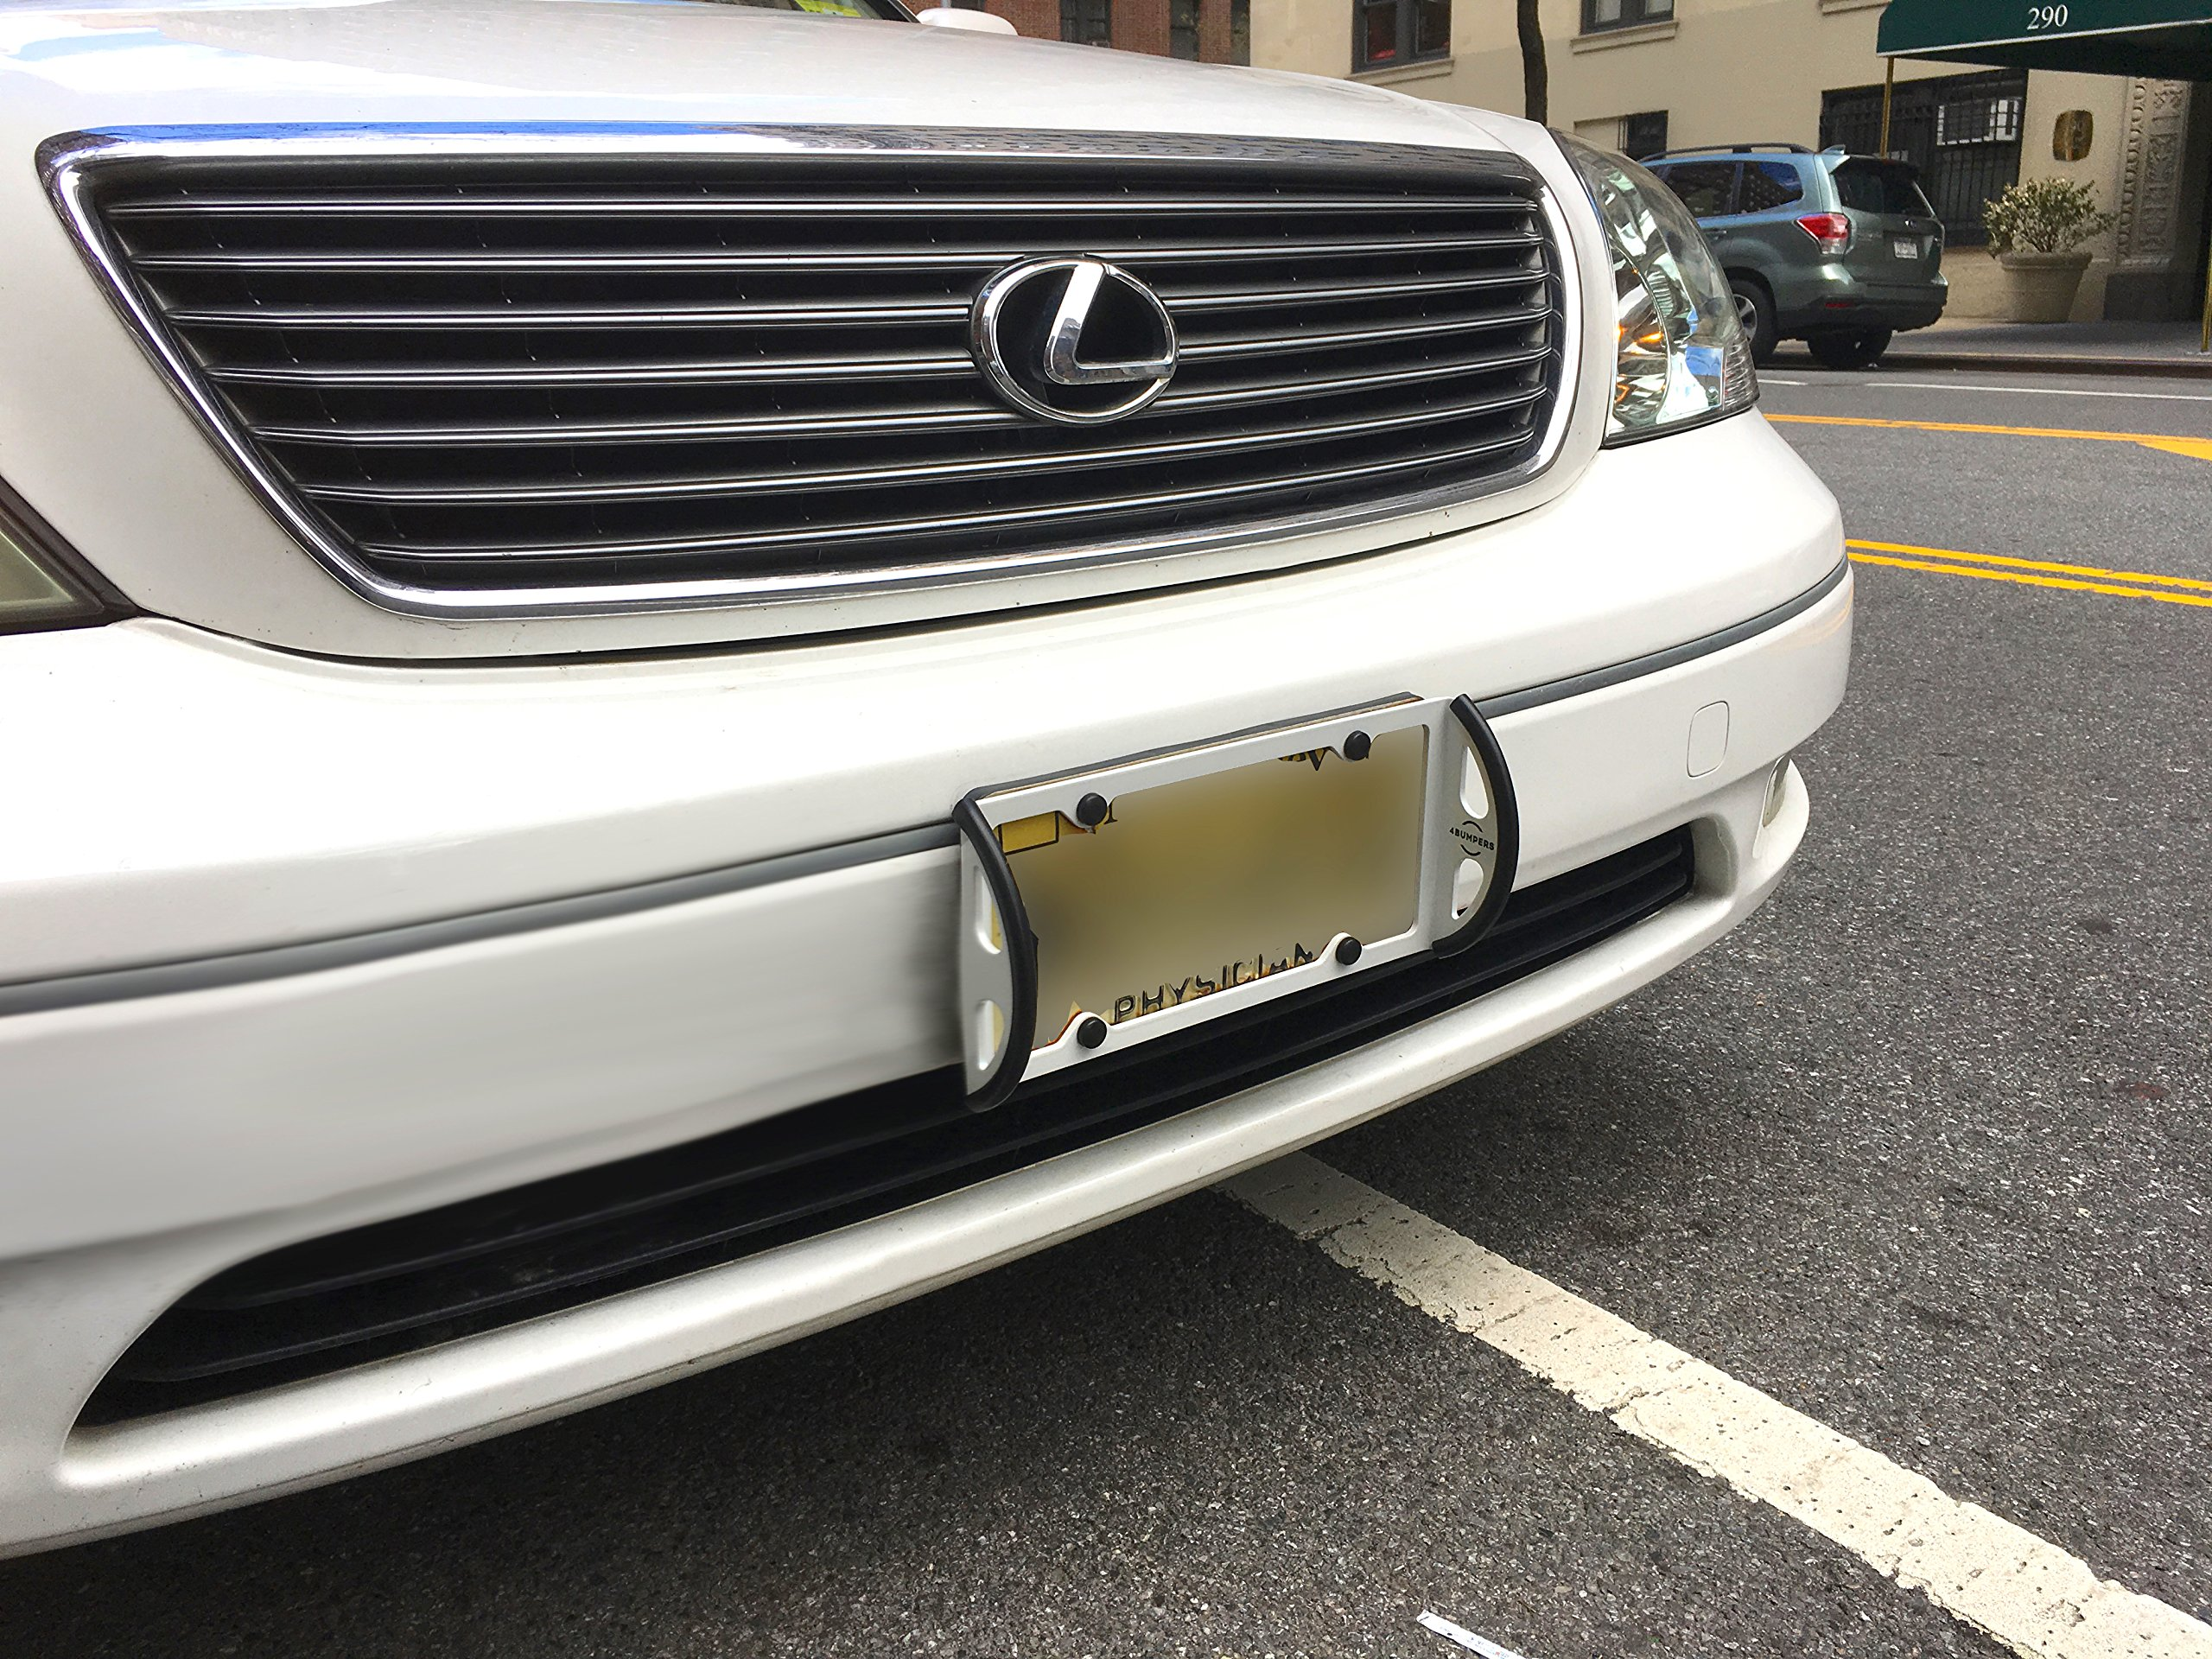 4Bumpers® Duo - The Best Solid Steel License Plate Frame Bumper Protector (Limited Edition White) by 4Bumpers® (Image #2)